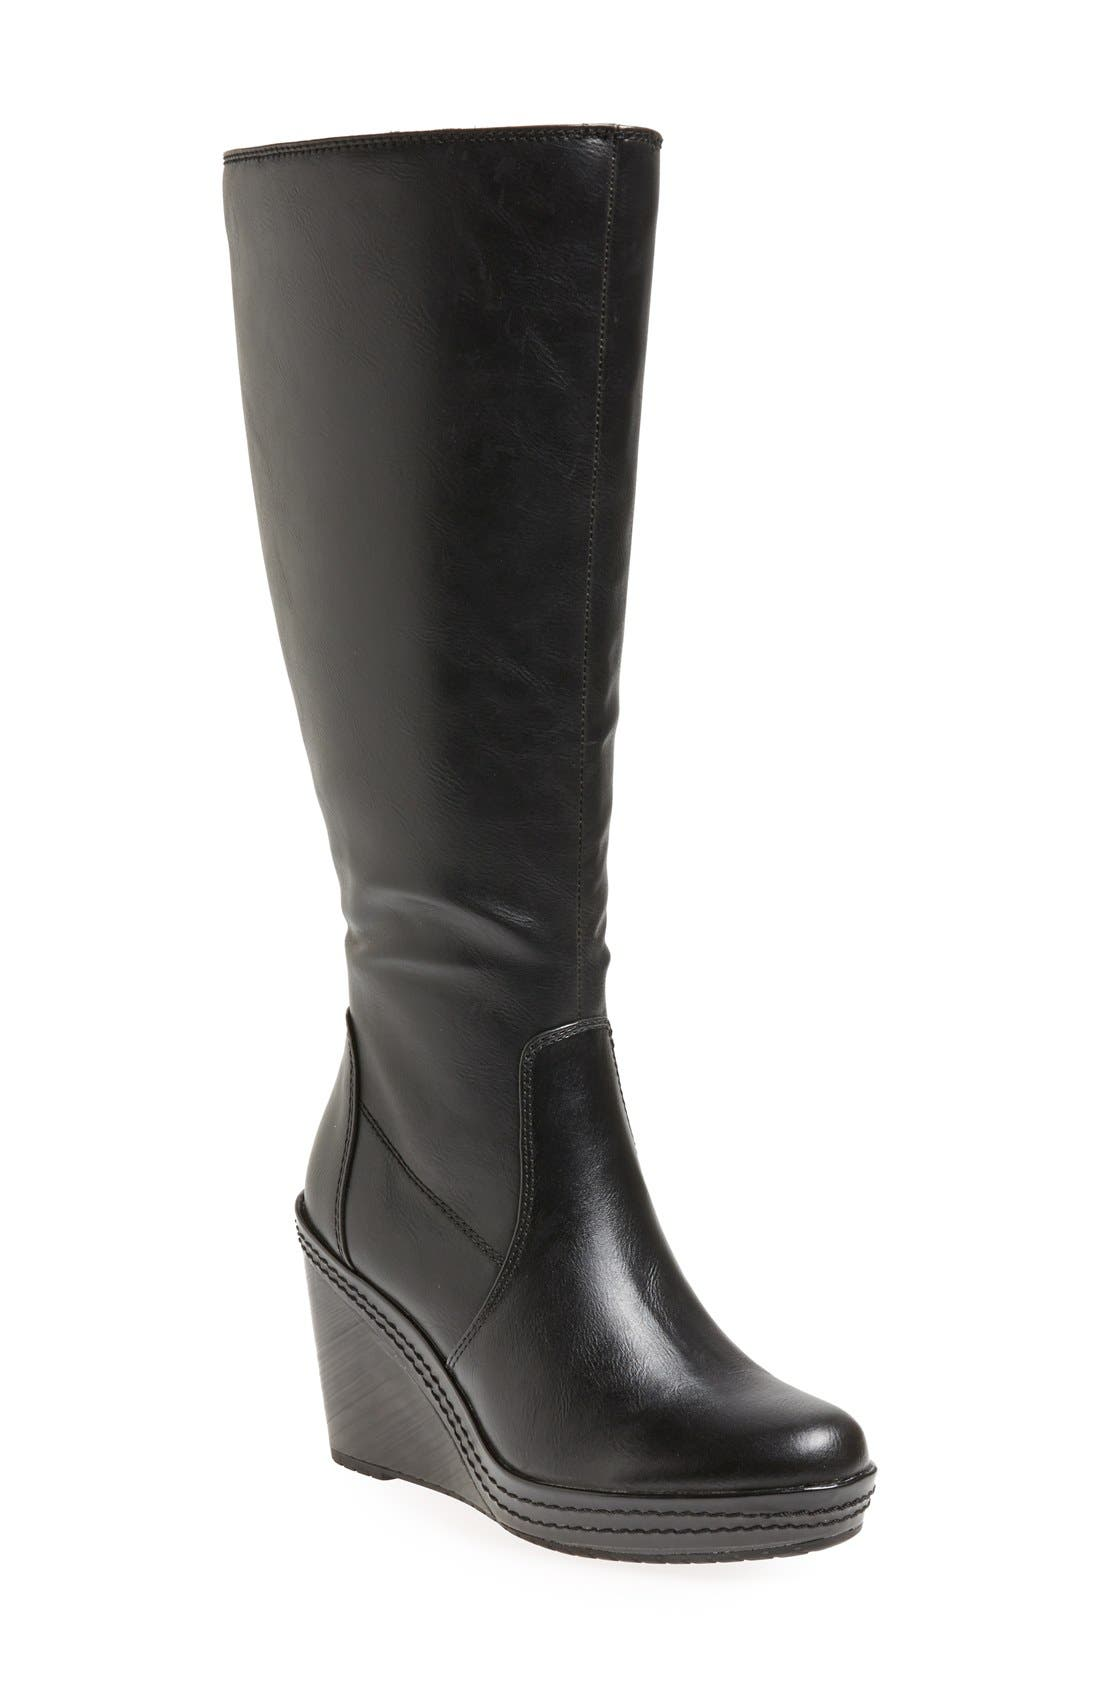 Alternate Image 1 Selected - Dr. Scholl's 'Bellamy' Boot (Wide Calf) (Women)